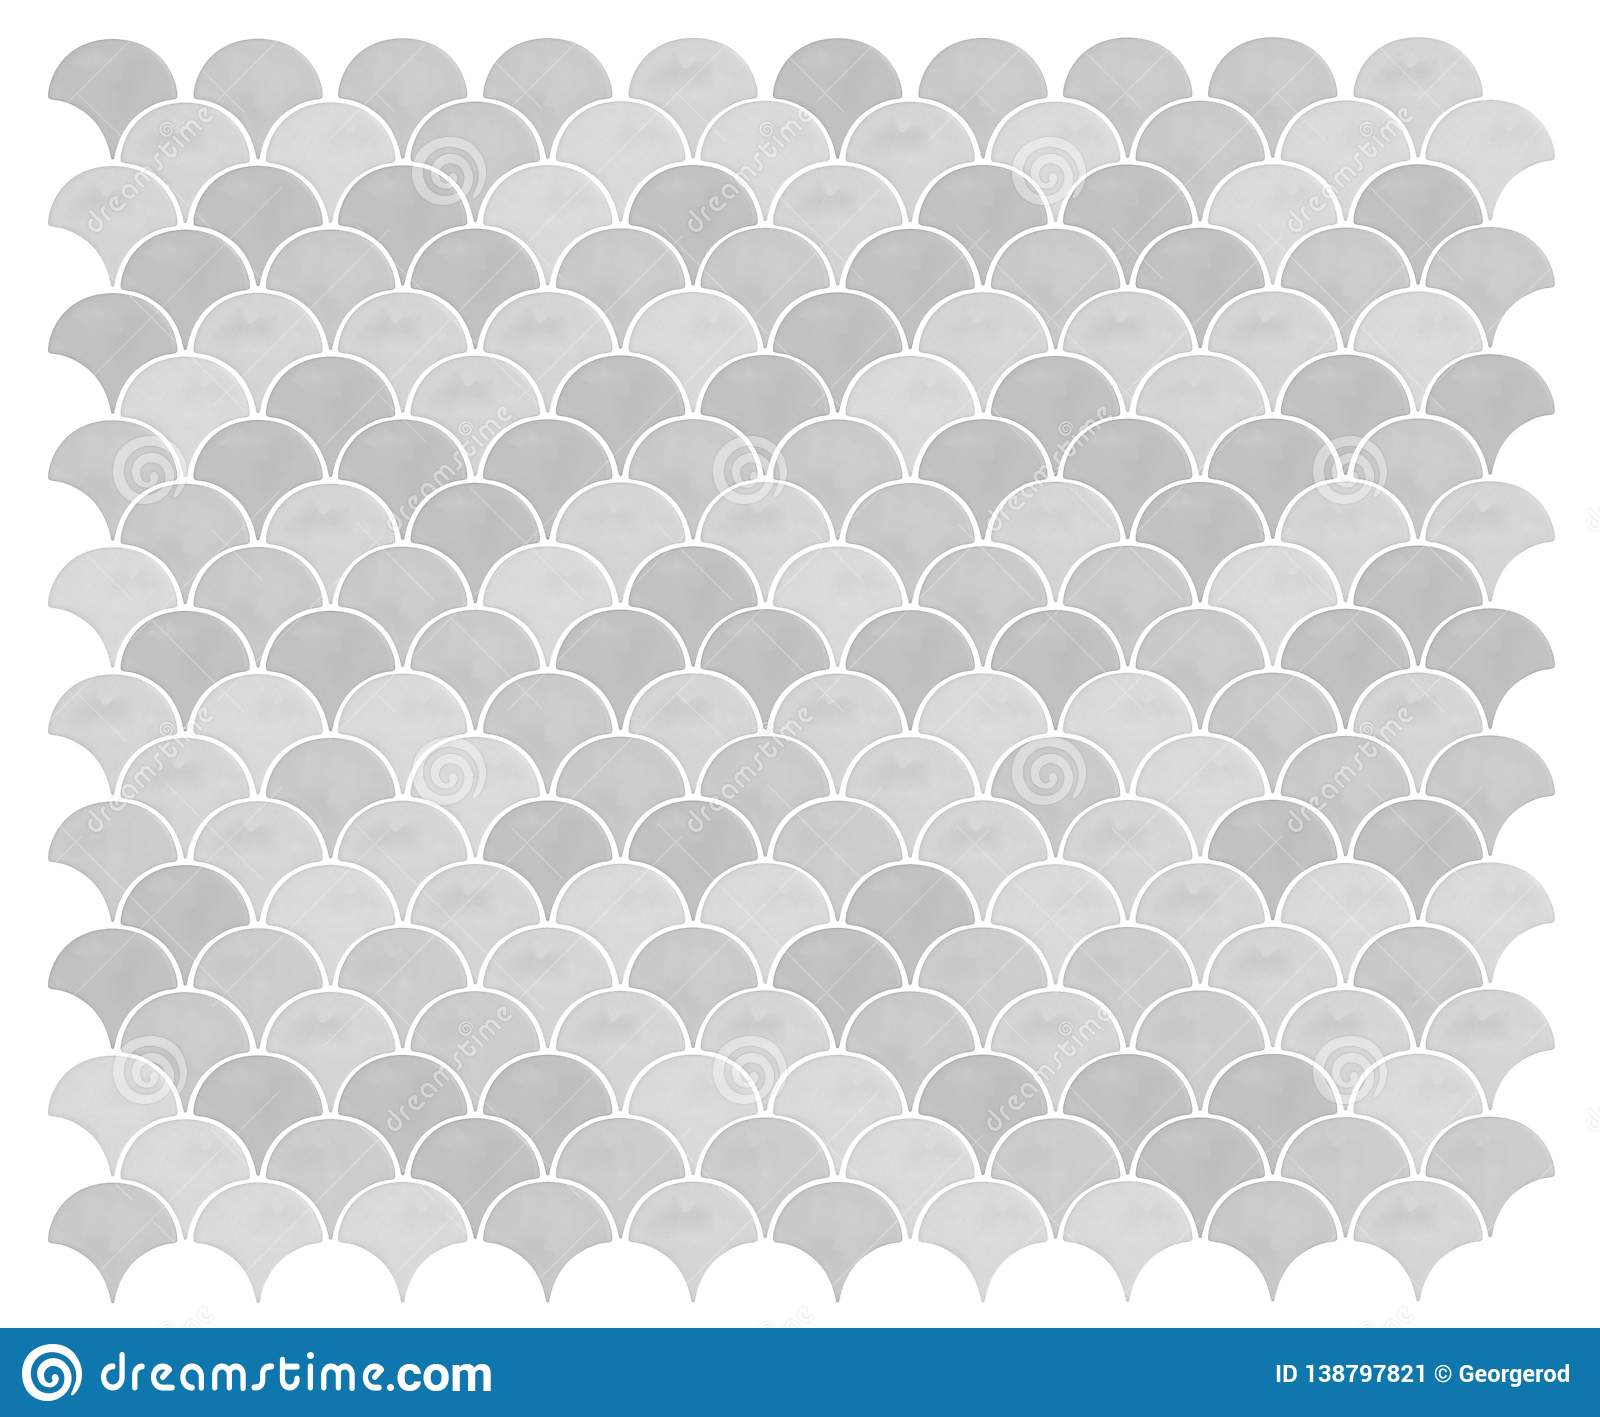 https www dreamstime com vector marine green seamless mermaid background pattern fish scales mermaid tiles vector marine green seamless mermaid image138797821